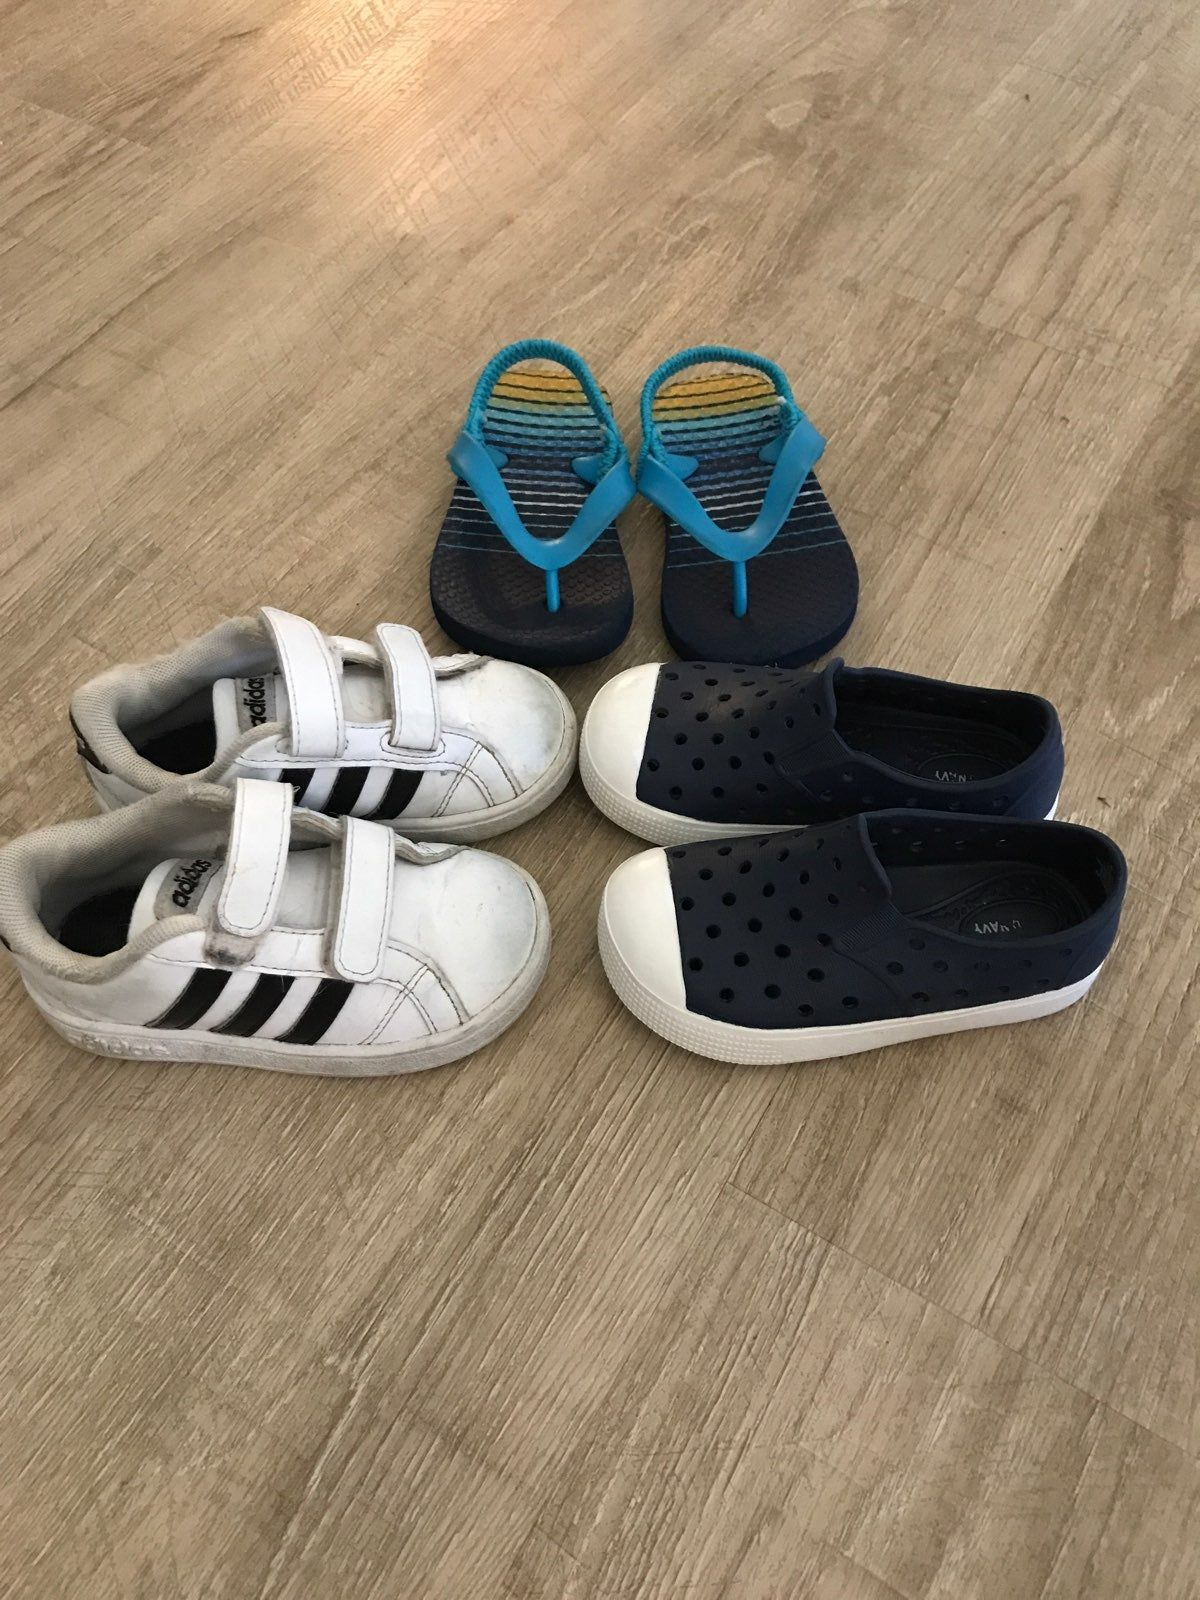 Size 6 boys shoes. Adidas tennis shoes